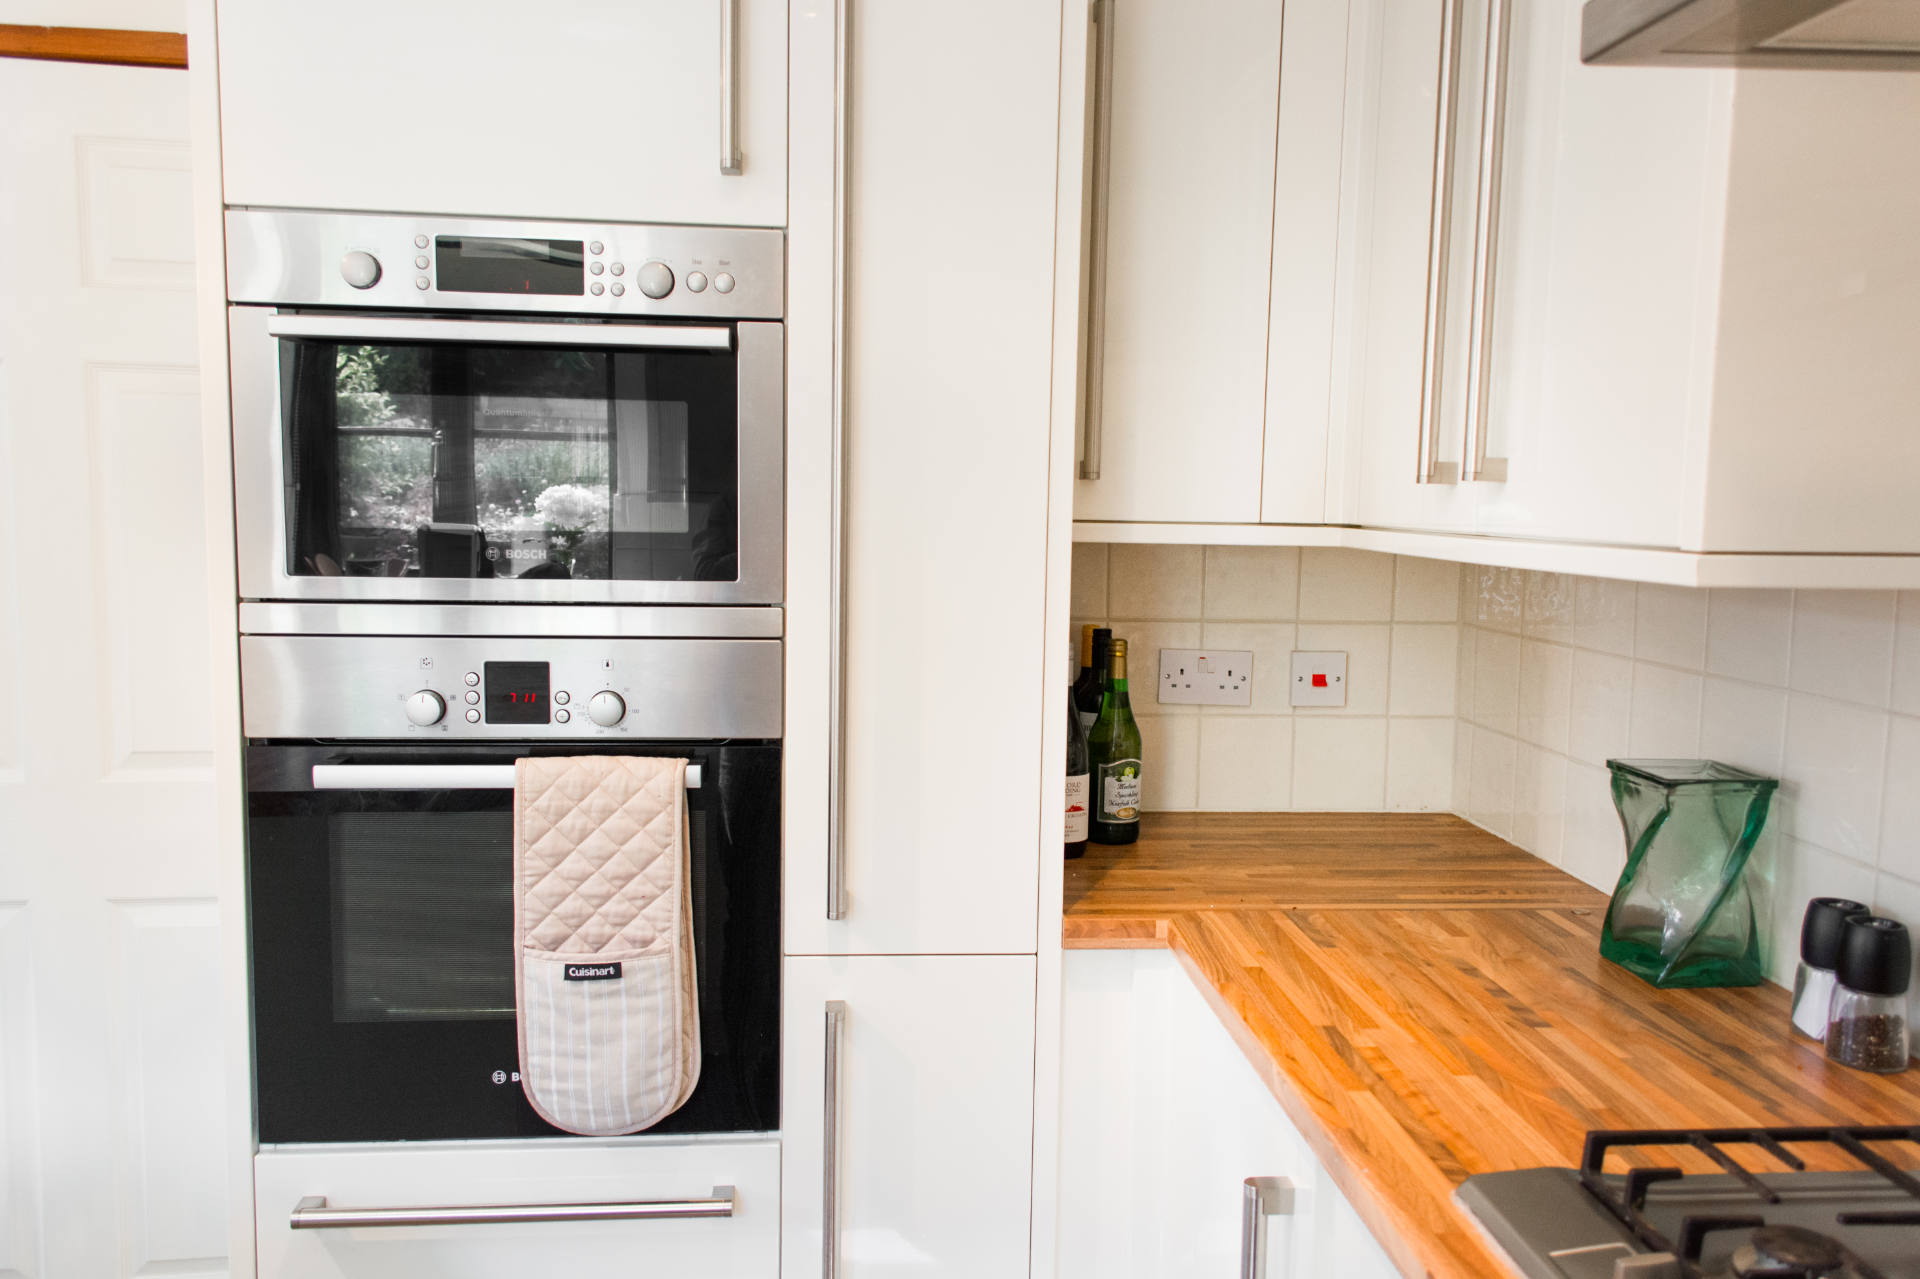 Kitchen worktop and oven with oven gloves.